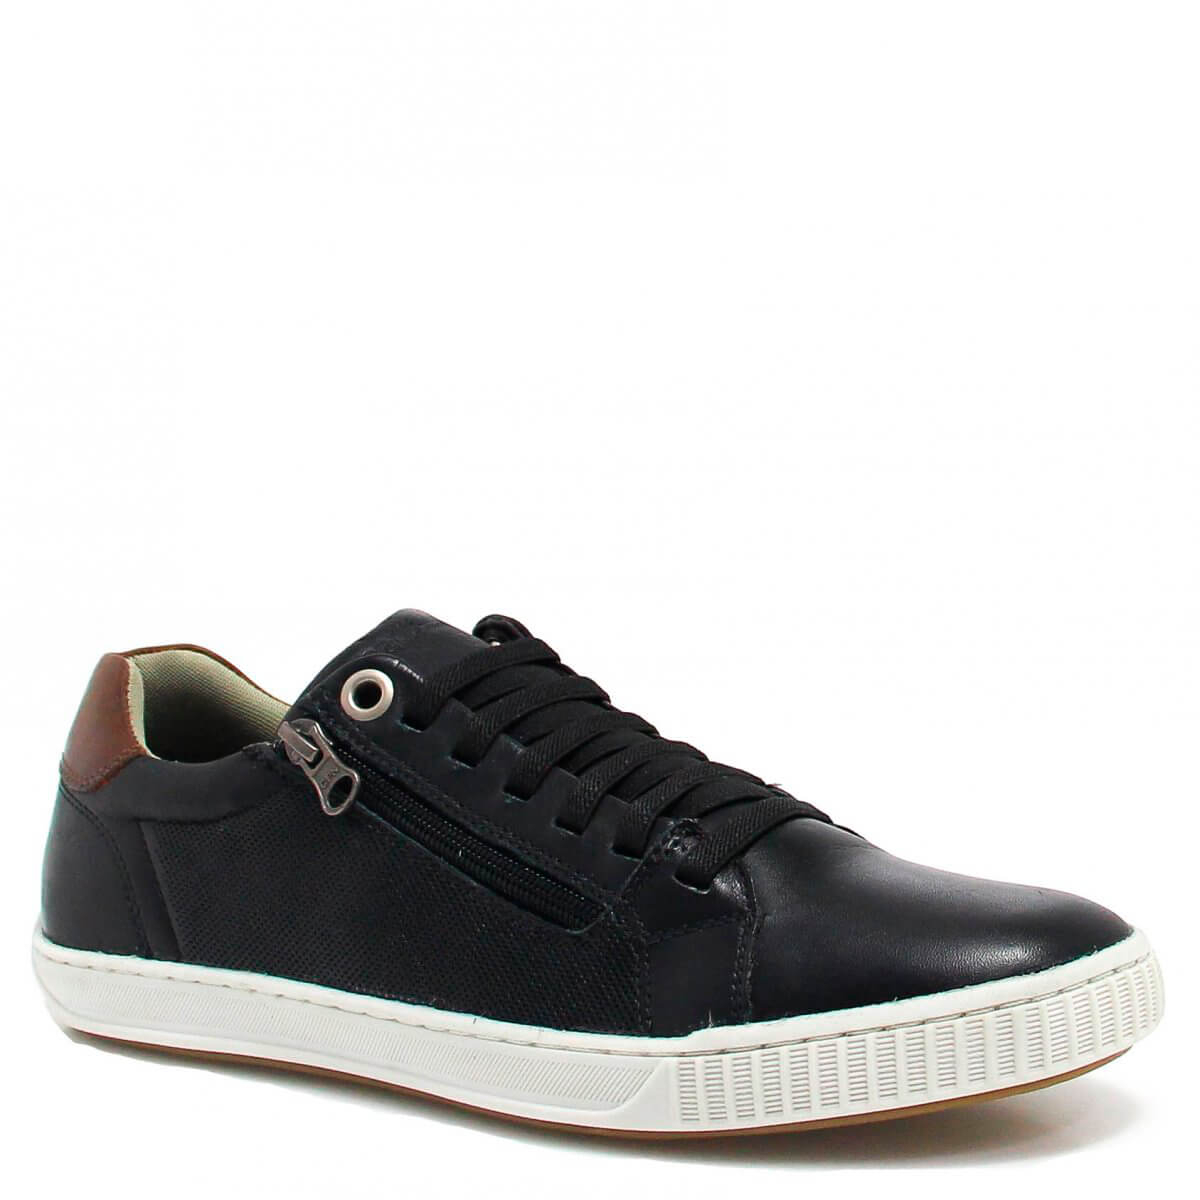 Sapatênis Casual Zariff Shoes Zíper Preto